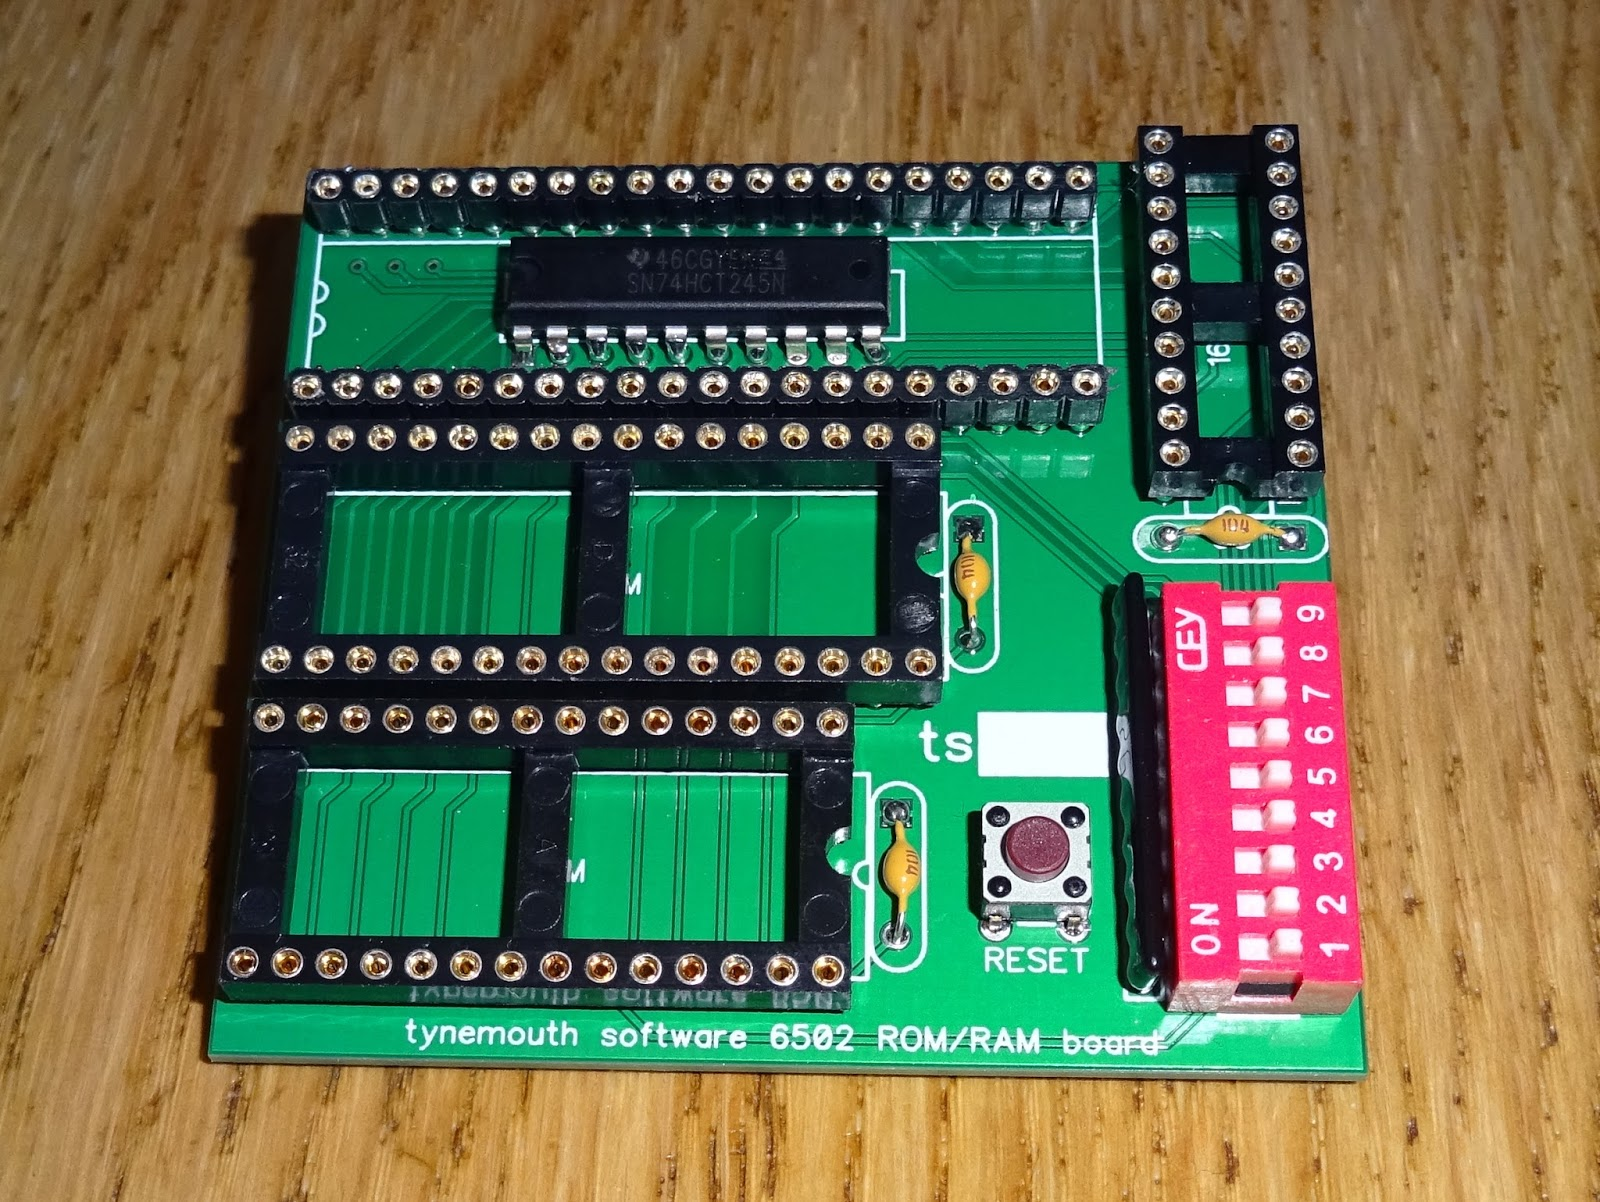 Commodore Pet ROM/RAM replacement boards - Tynemouth Software